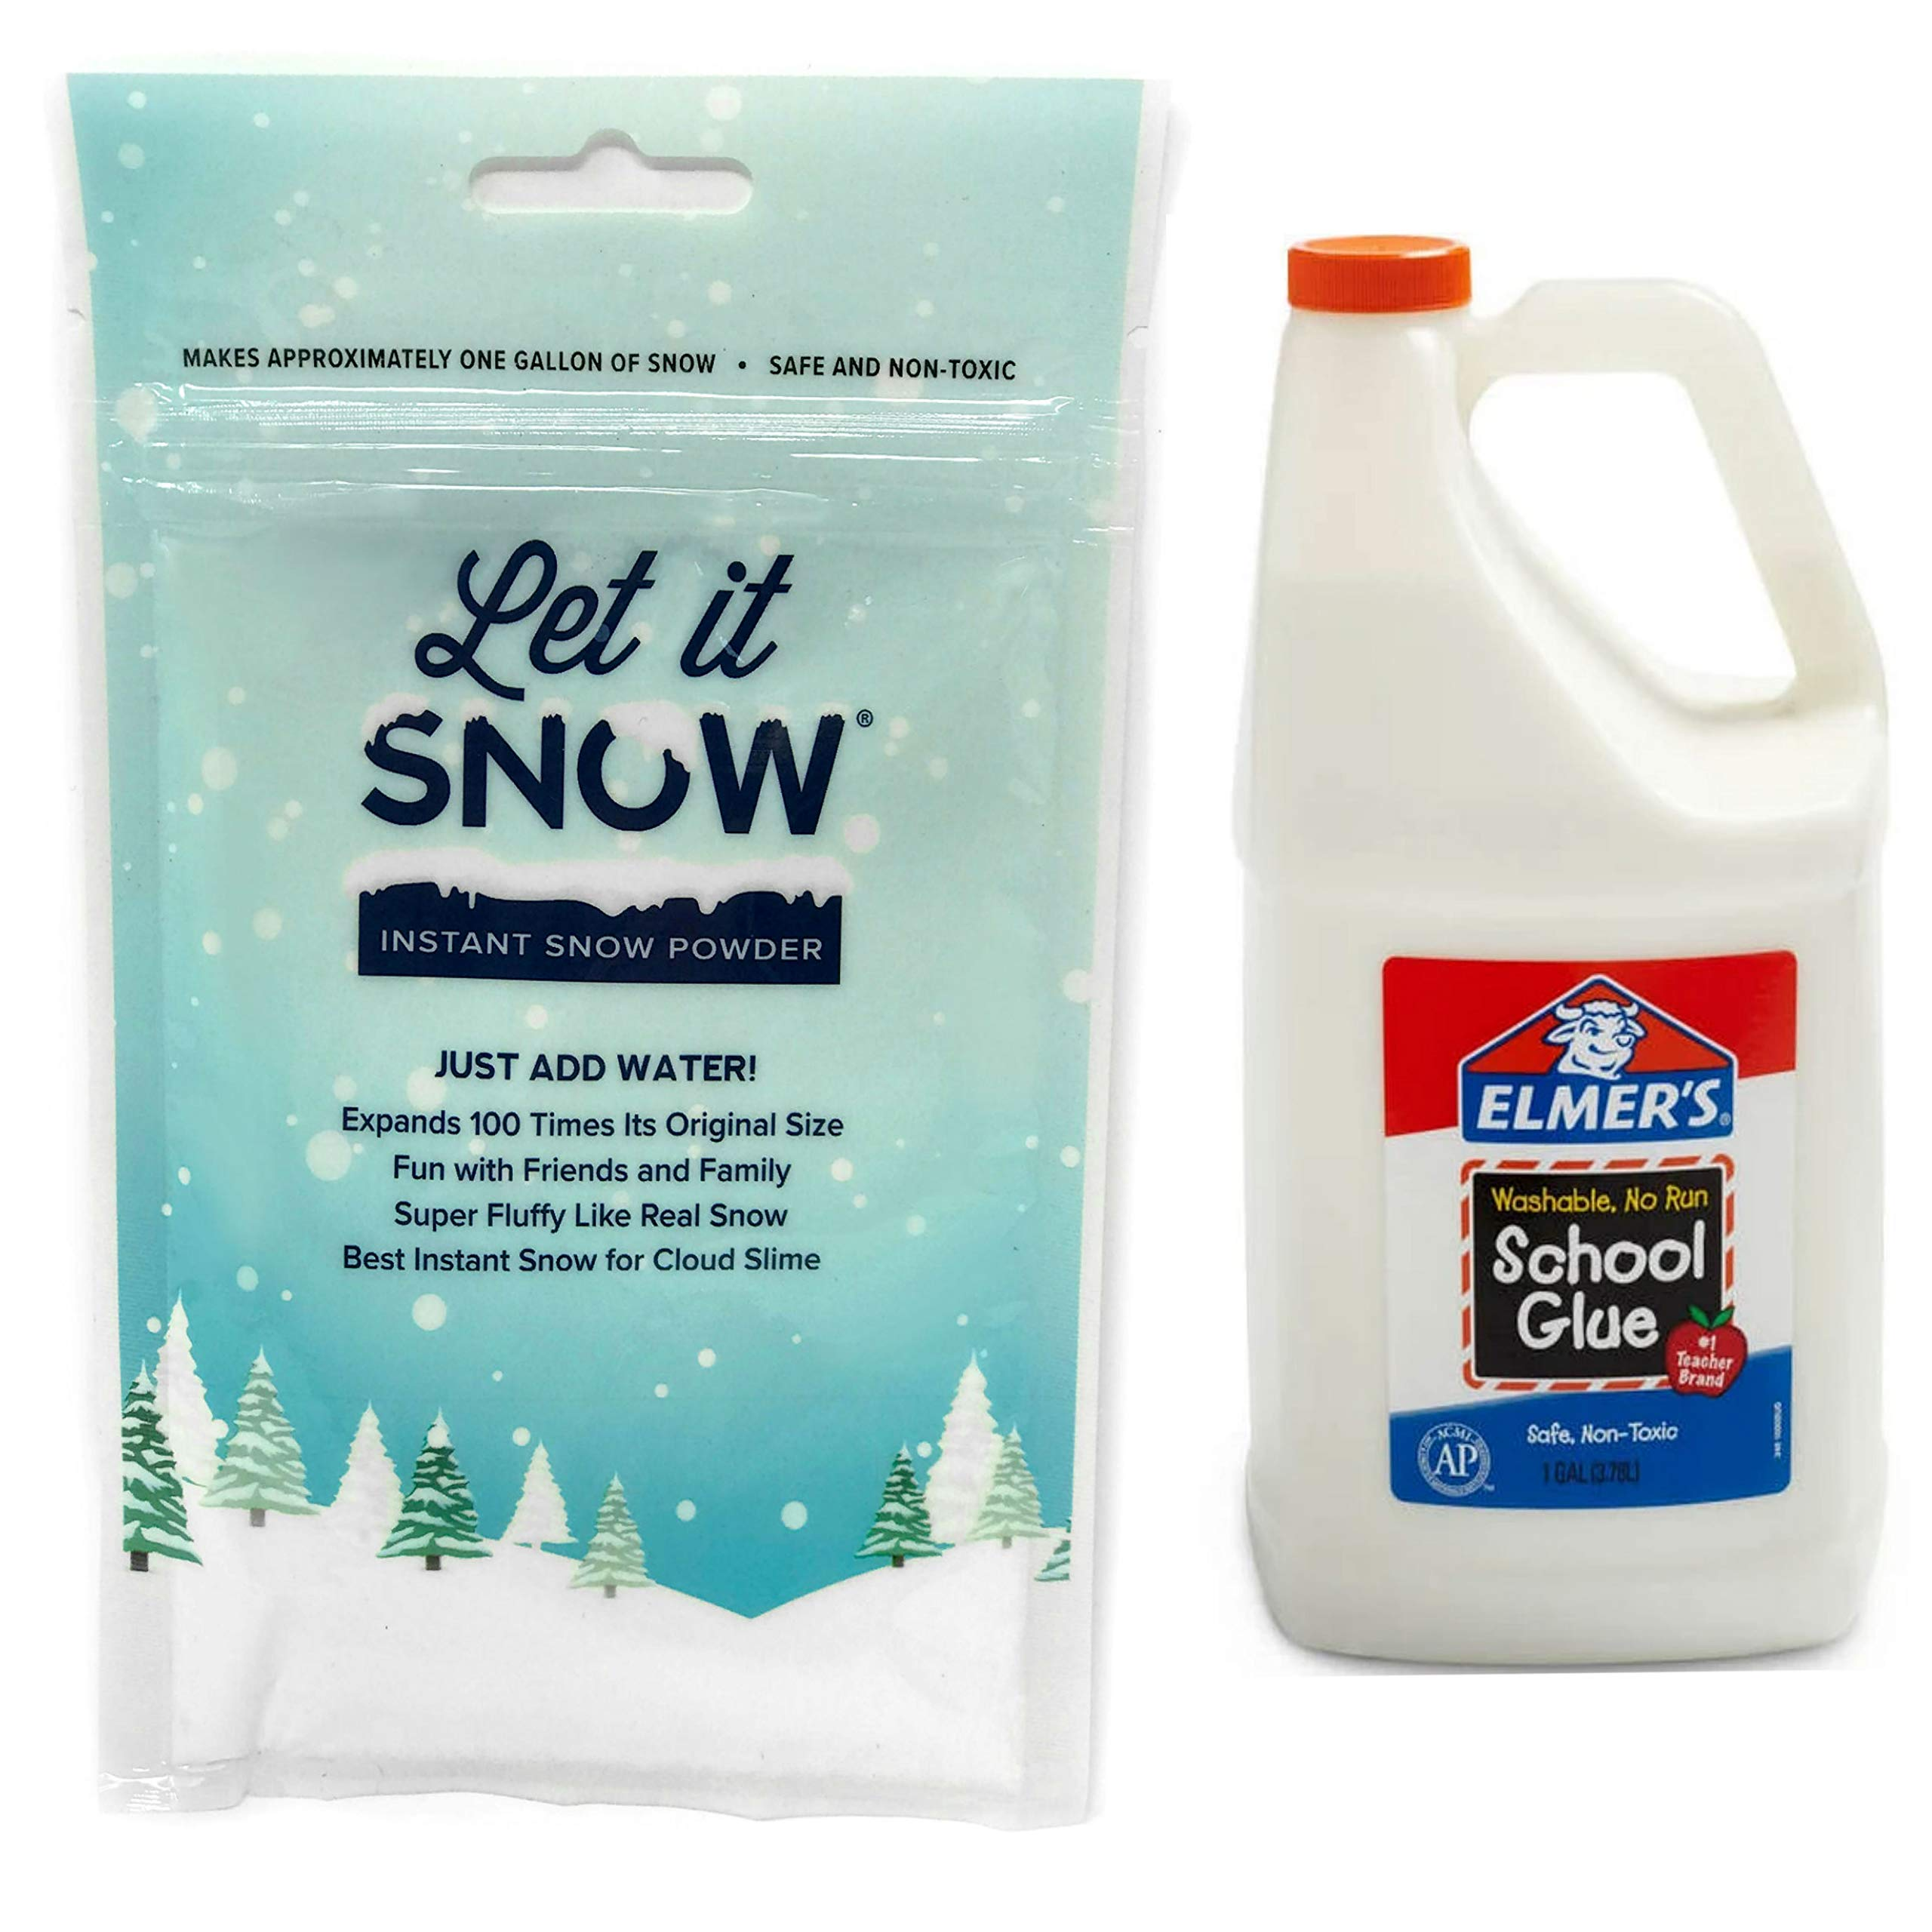 Let it Snow Instant Snow Powder (4 Gallons) and Elmer's Glue (1 Gallon) - Mix Makes Magical Fluffy White Artificial Snow - Perfect for Cloud Slime! Frozen Theme Birthday Parties and Snow Decorations! by Let it Snow (Image #8)